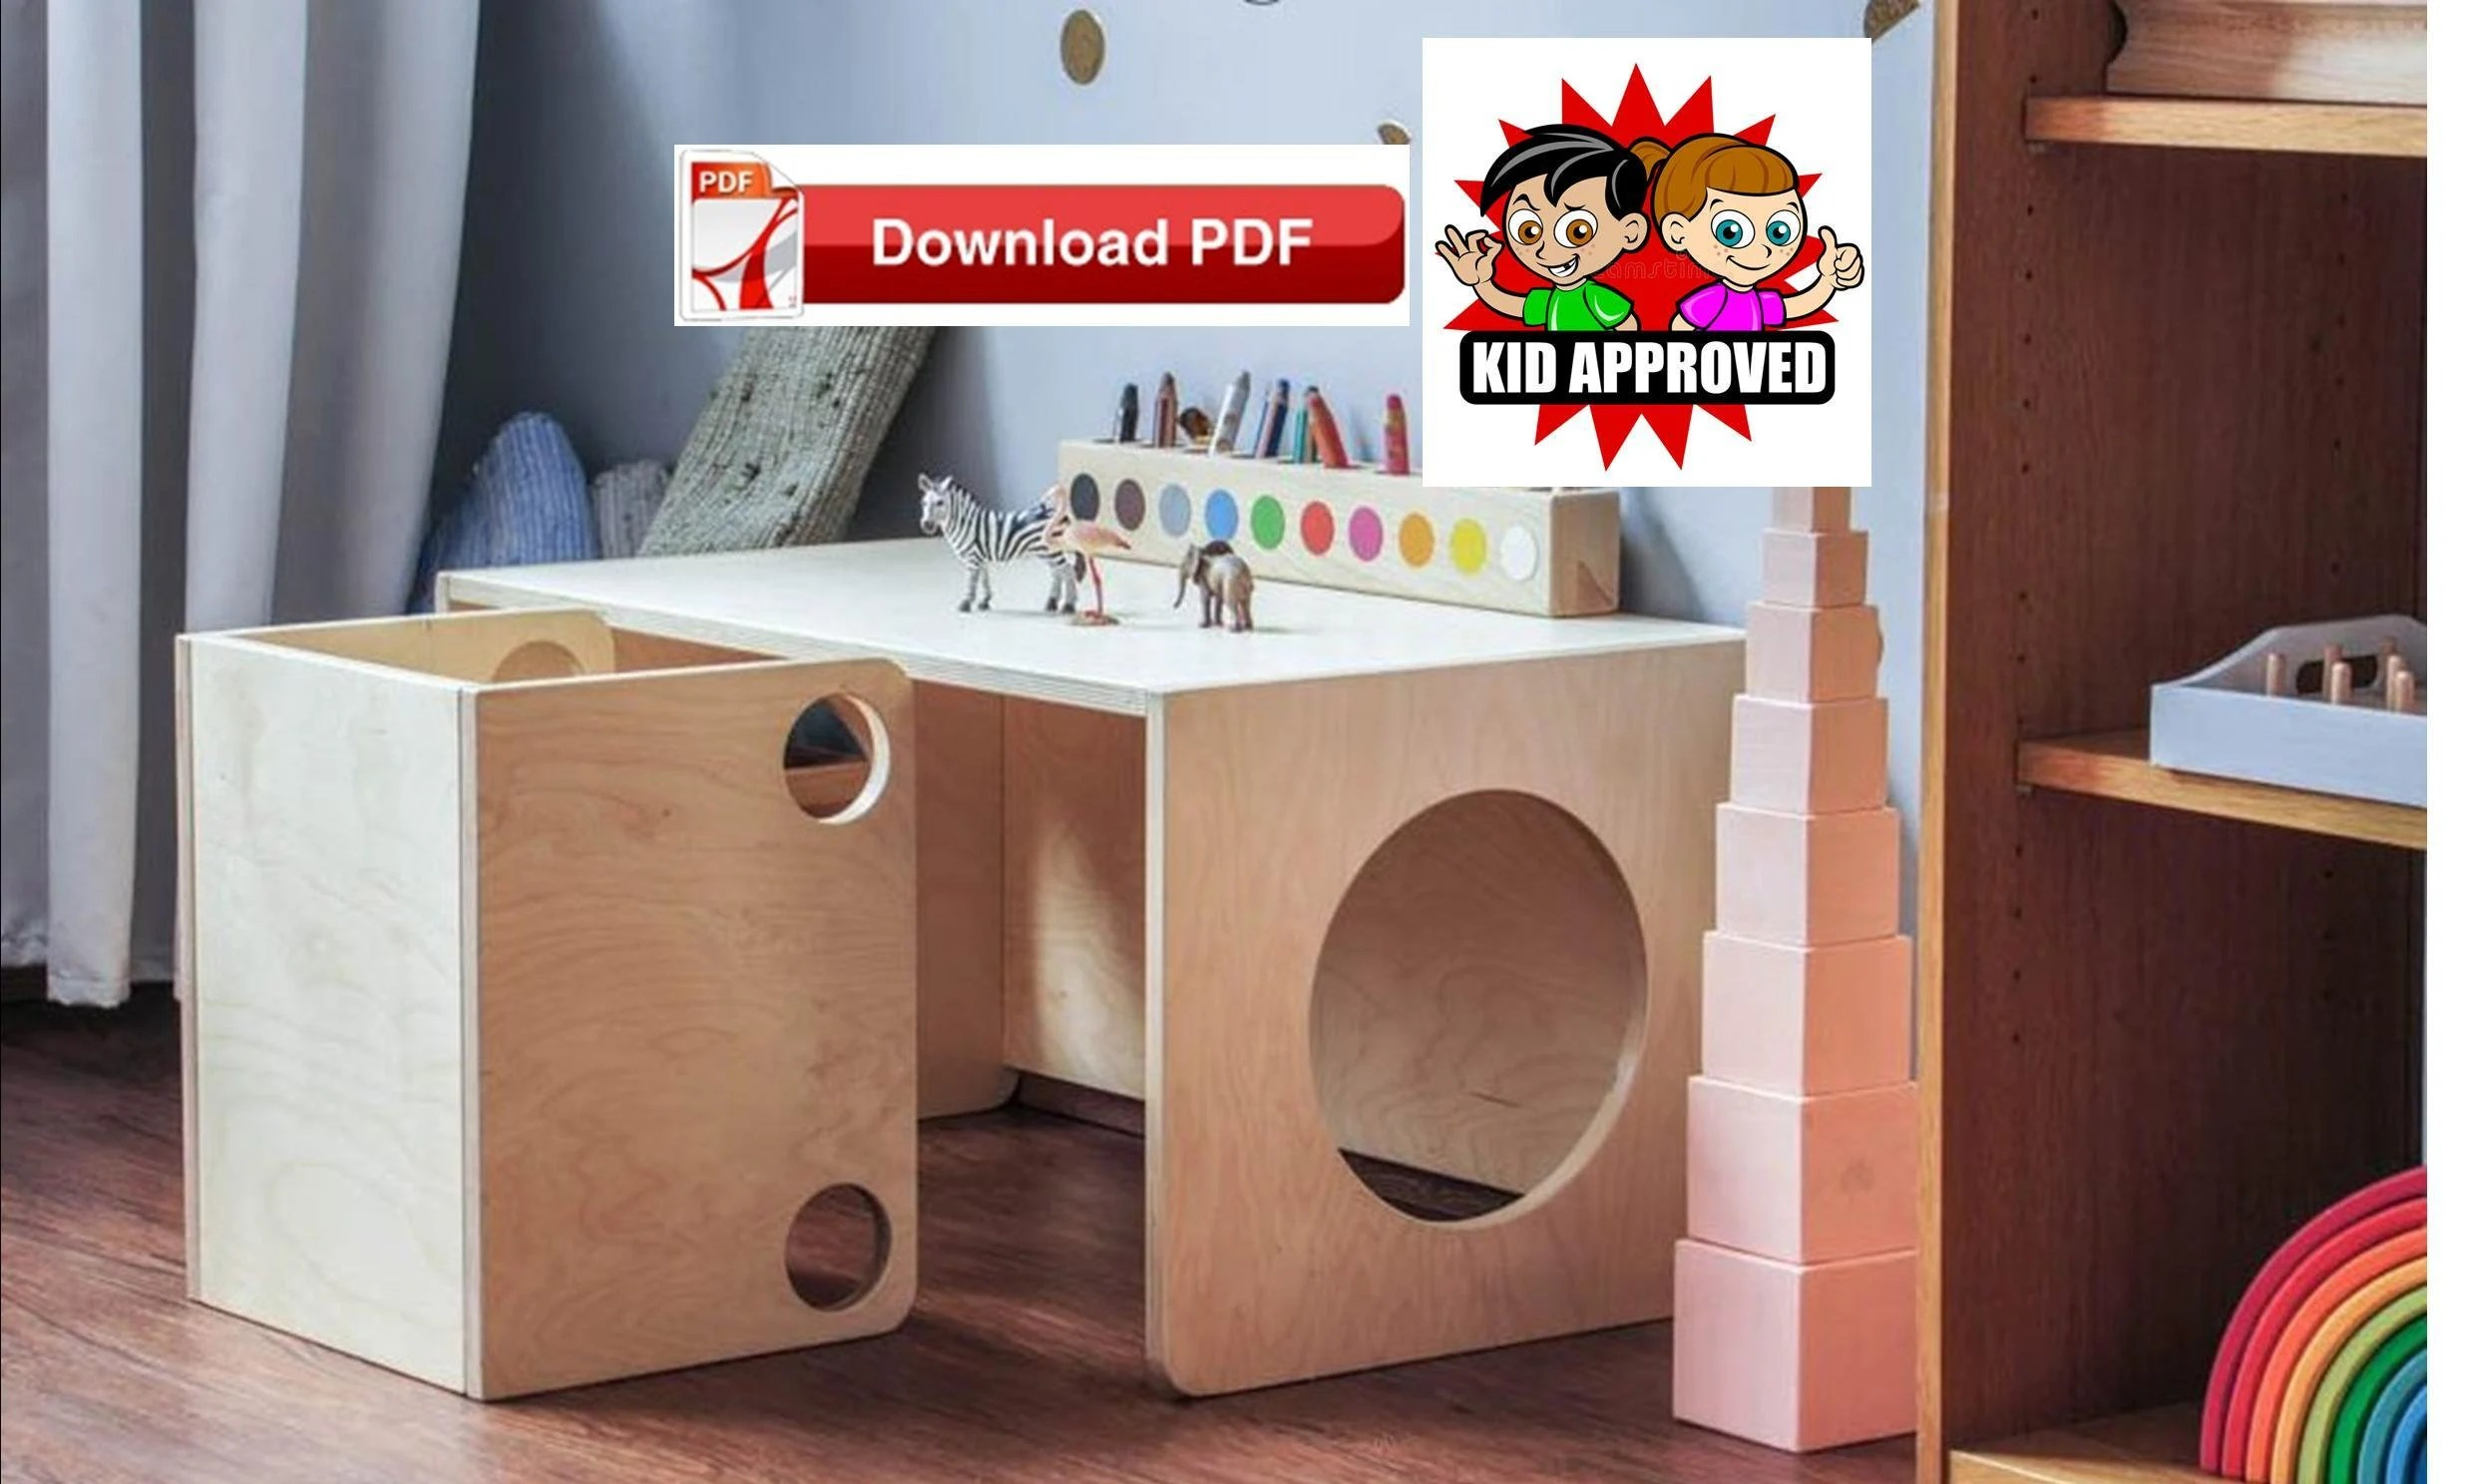 Cube Chairs Montessori Cube Chairs And Desk Table Plan Diy Activity Table And Chair Plan Toddler Chair Plan Toddler Table Plan Kids Craft Table Plan